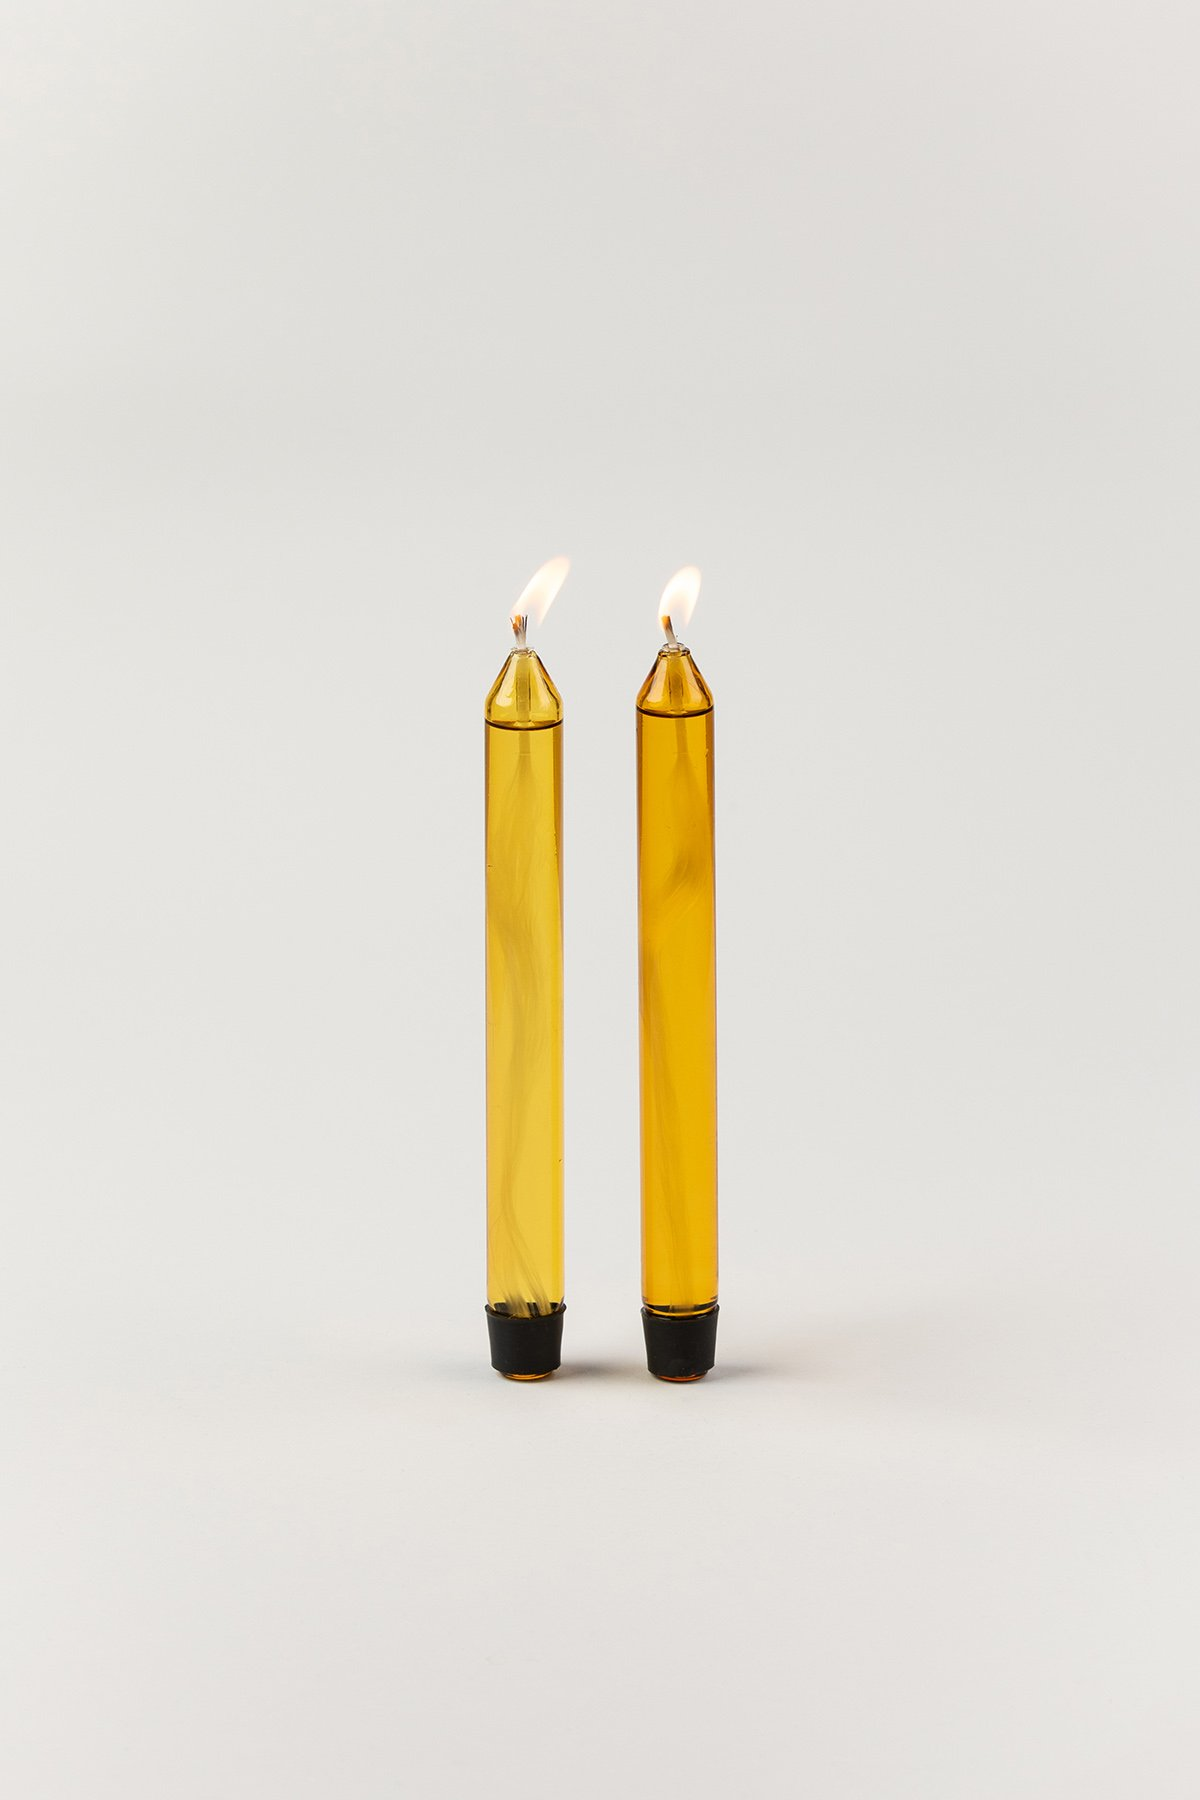 Studio About Glass Candle Oil Yellow 2-pack